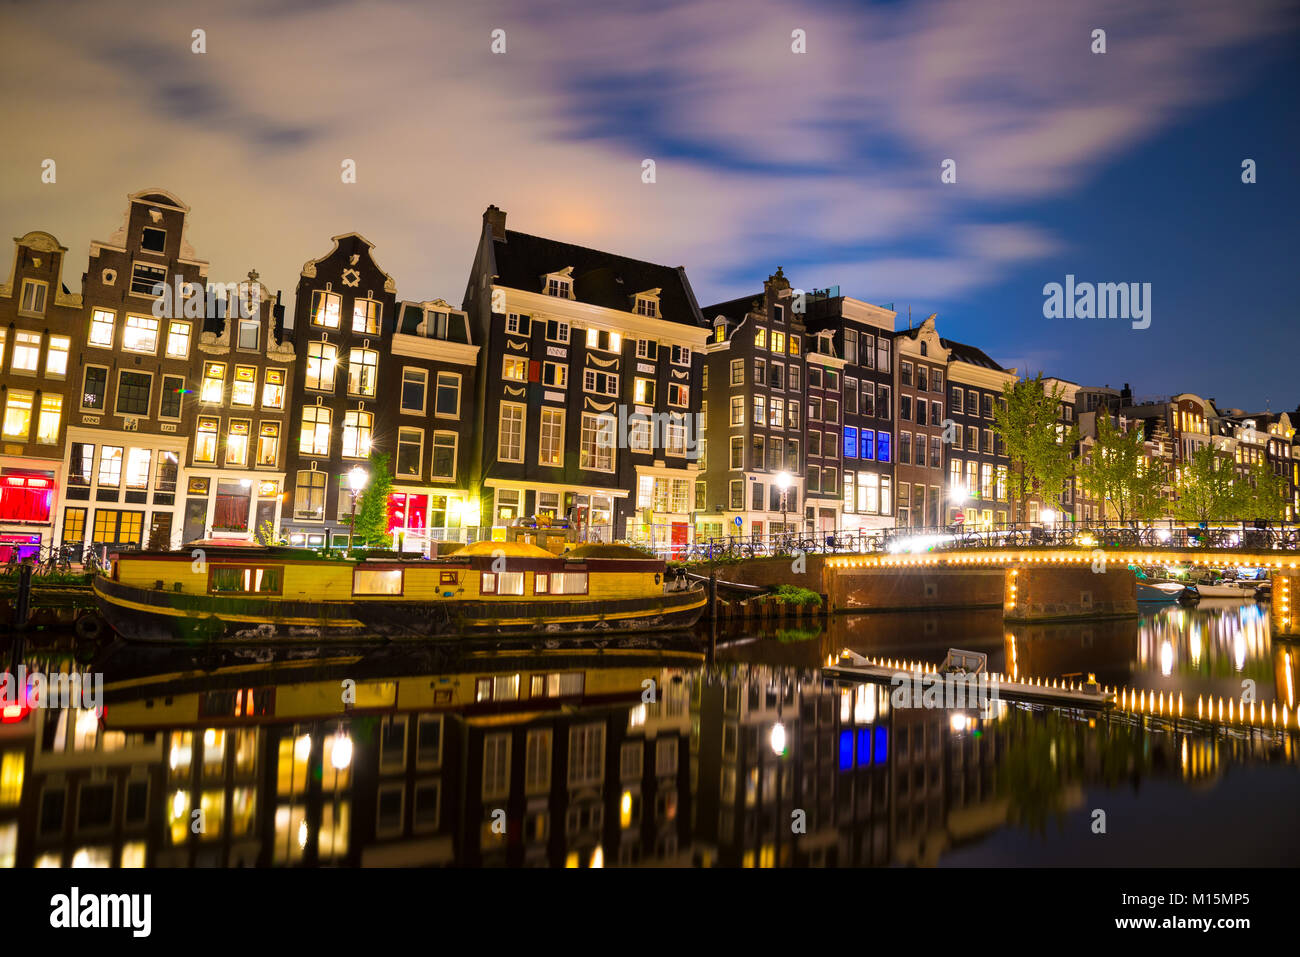 View of the Amsterdam canals and embankments along them at night. - Stock Image